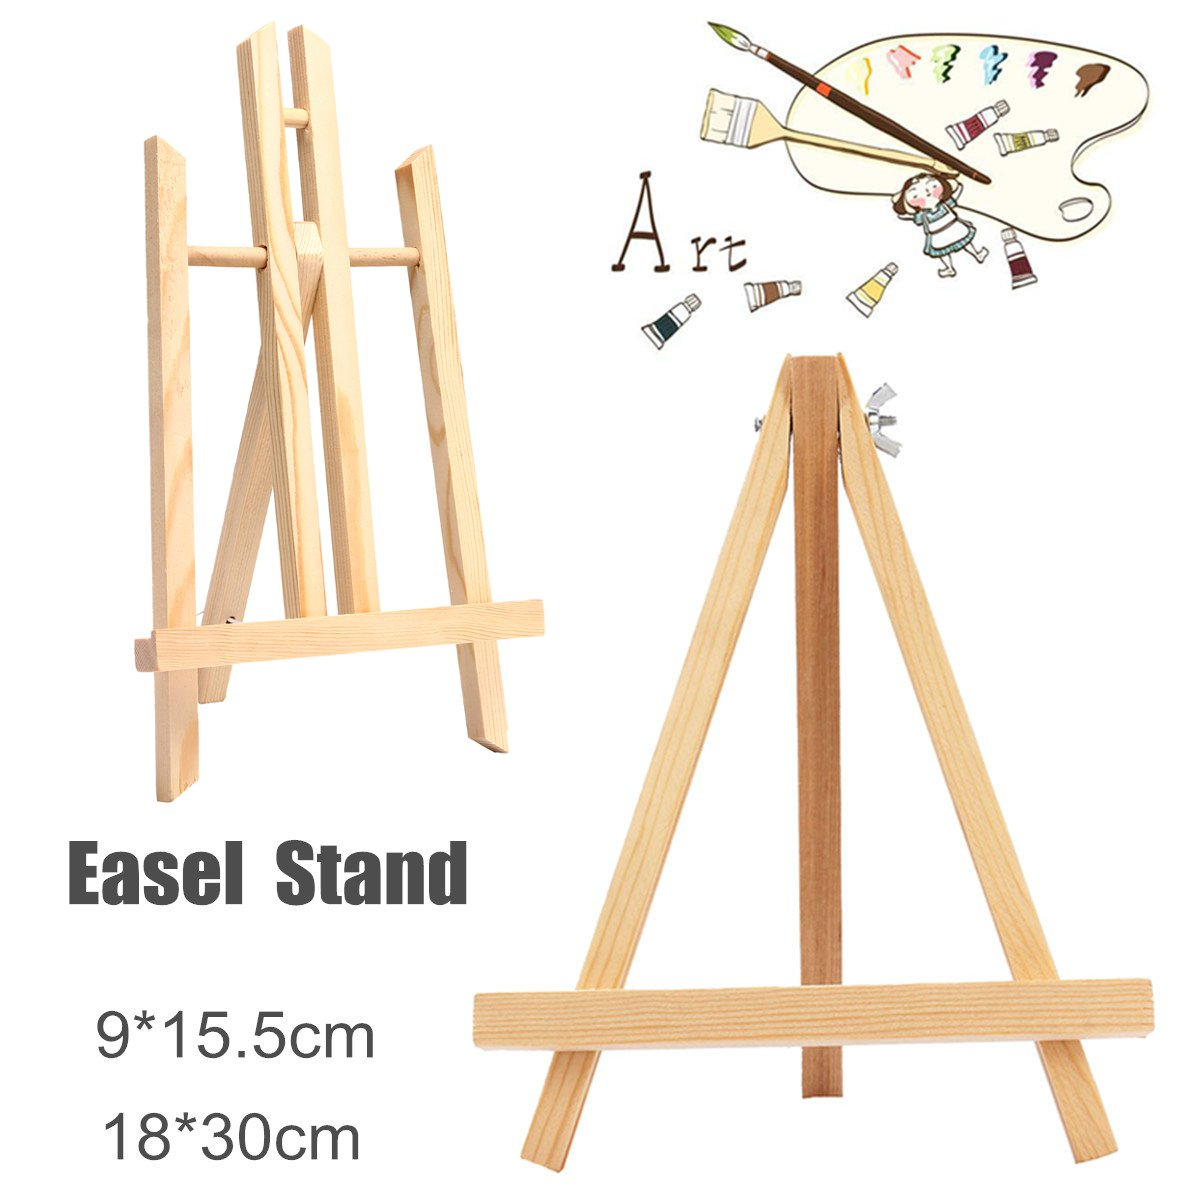 Wooden Durable Easels Display Tripod Artist Painting Stand Rack Wedding Table Card Stand Holder For Party Decoration 155X90mm